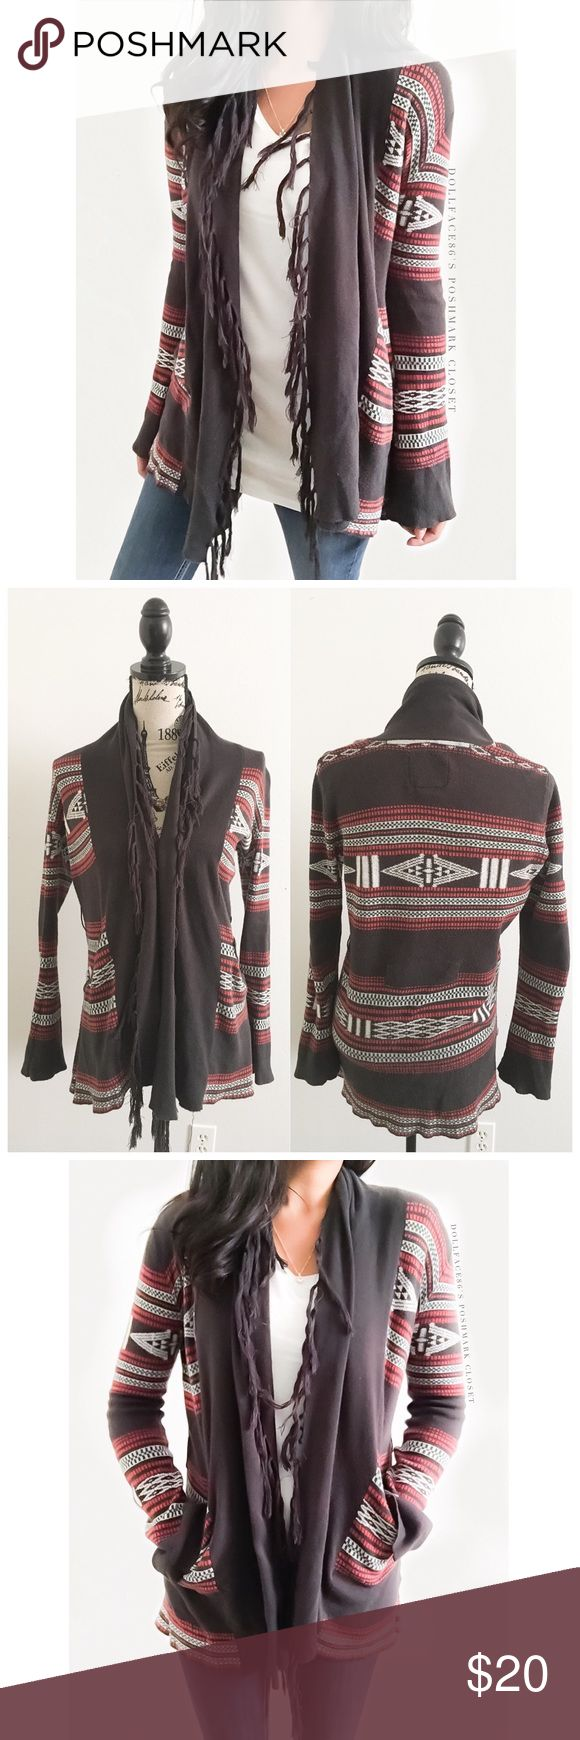 "Billabong Boho Fringe Cardigan This sift cardigan has a stylish southwestern print with a fringe lined front + pockets on each side. It's a super comfortable cardigan, nice for multiple season wear.  {I am not a professional photographer, actual color of item may vary ➾slightly from pics}  ❥chest:21"" ❥waist:20"" ❥length:28""/30"" ❥sleeves:26"" ➳material/care:cotton/machine wash  ➳fit:could work for med  ➳condition:pre-loved,missing belt,no rips/stains  ✦20% off bundles of 3/more items ✦No Trades…"